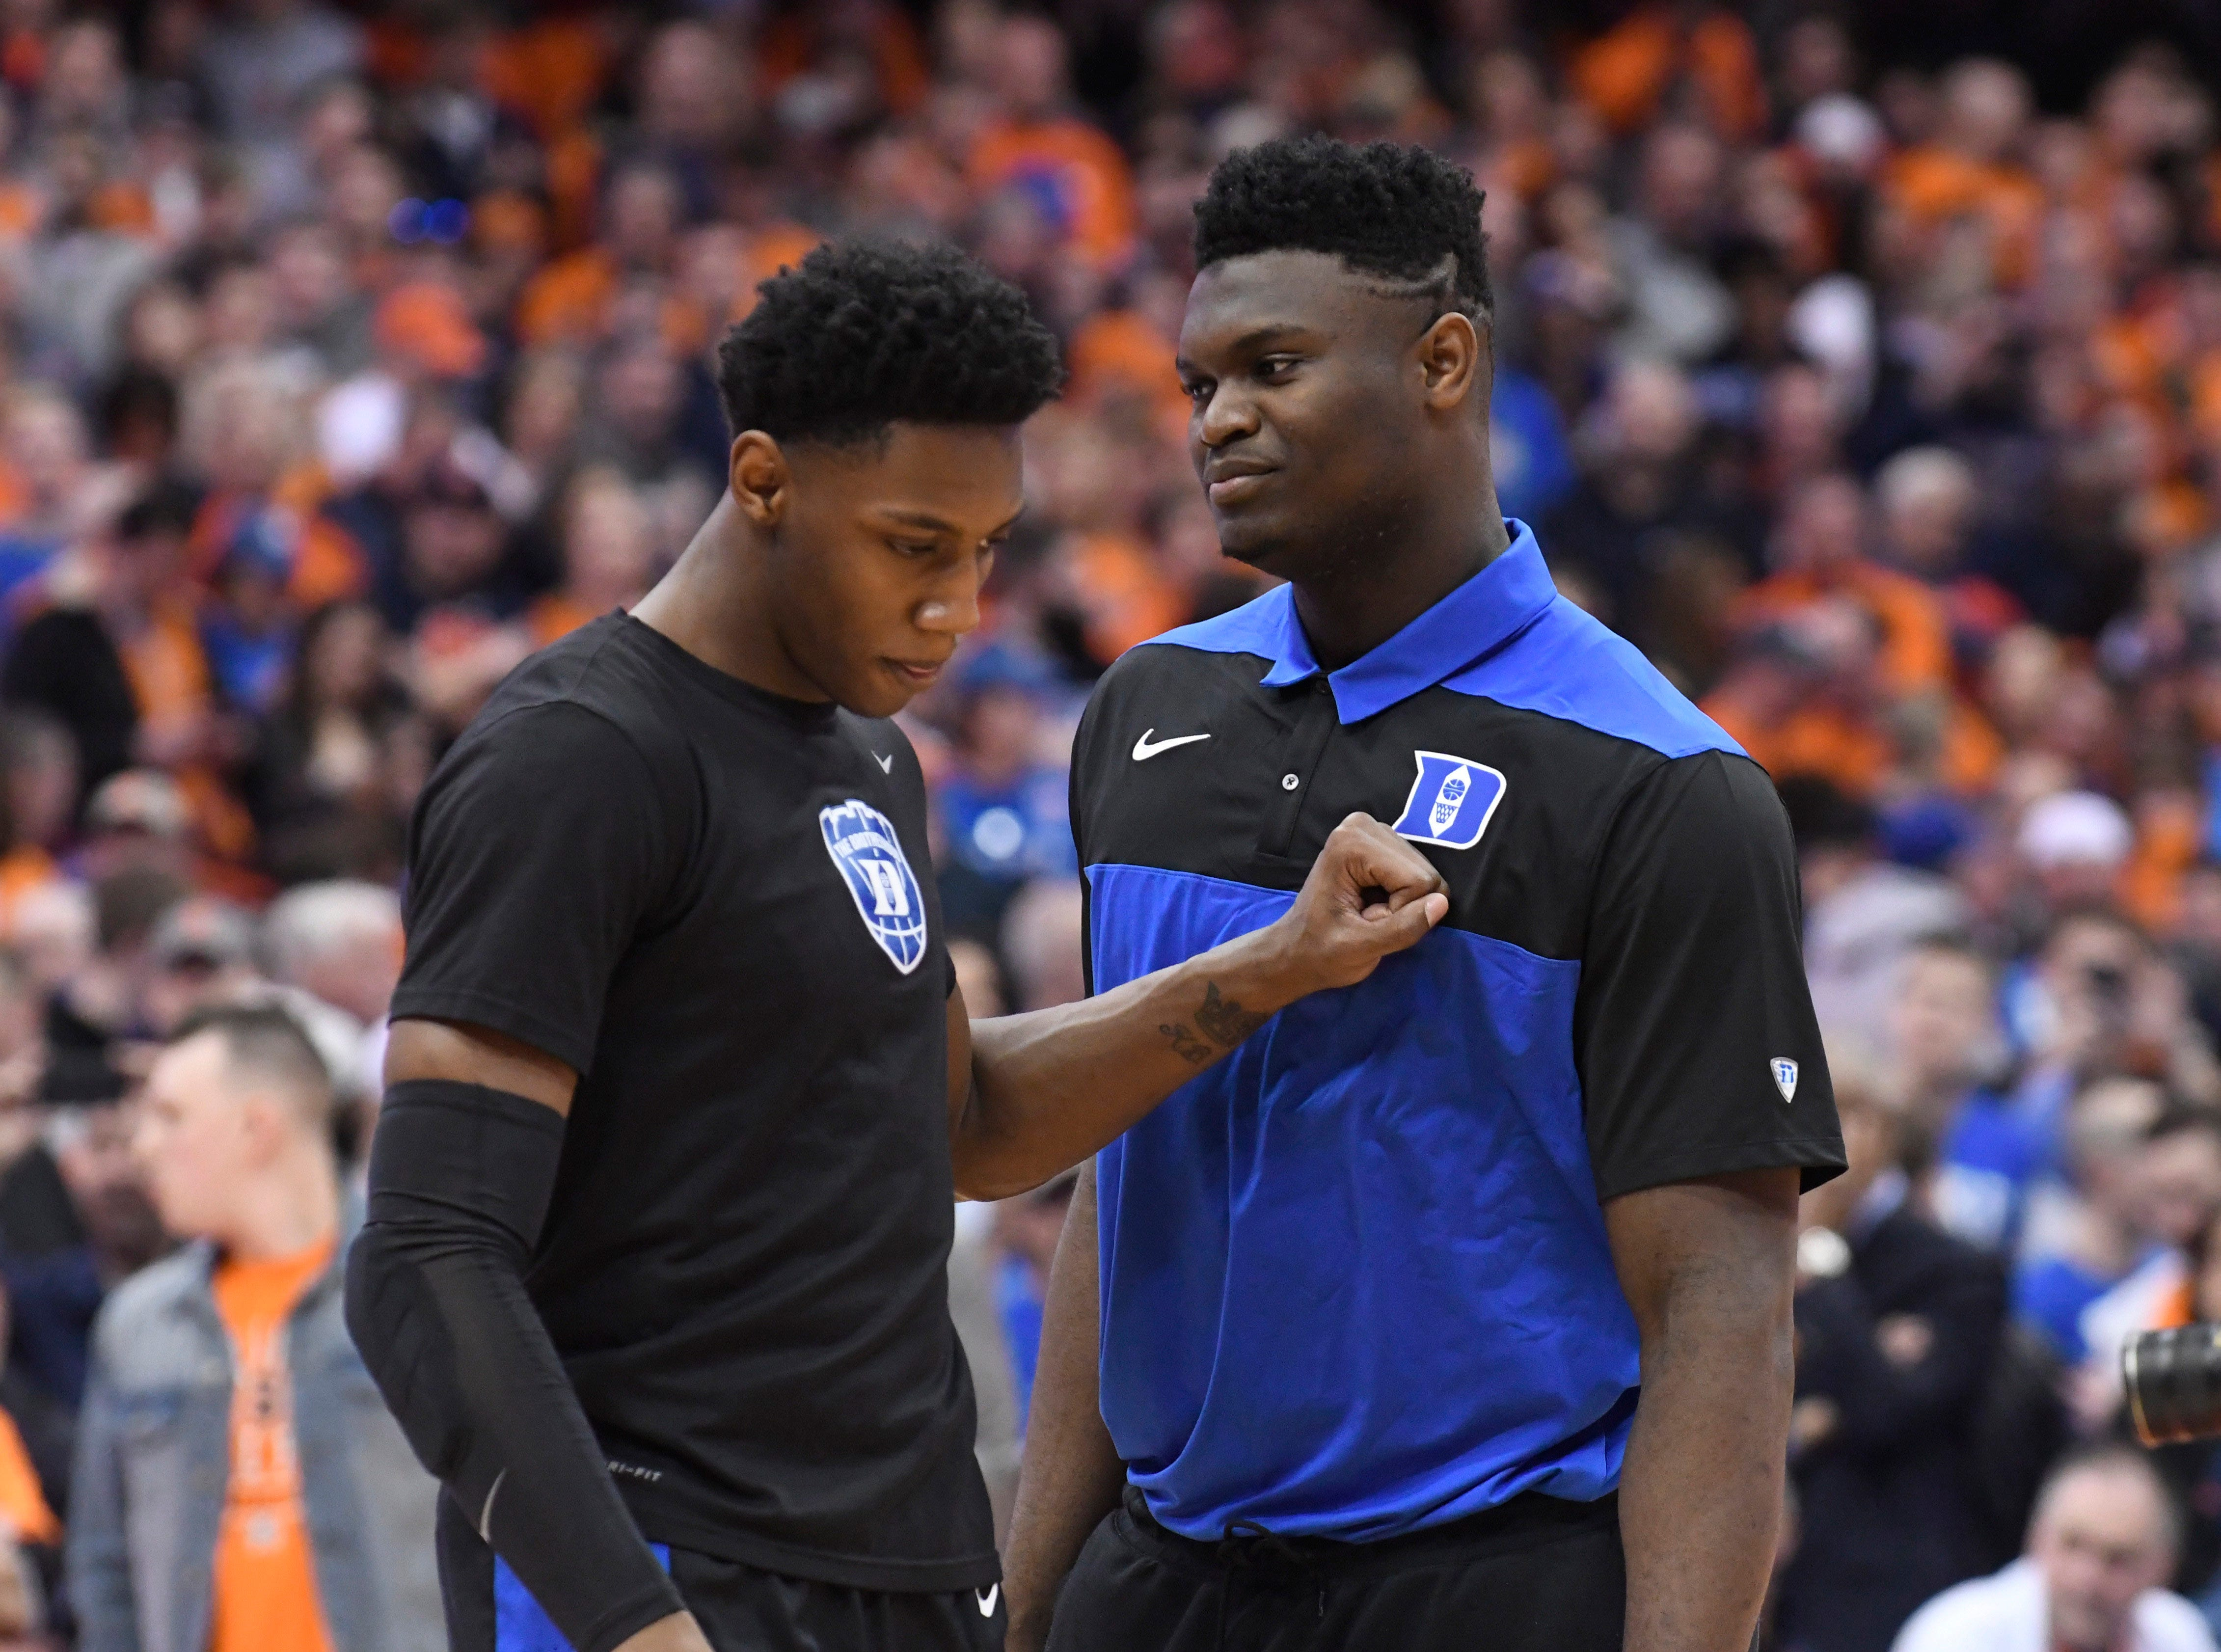 Feb 23, 2019; Syracuse, NY, USA; Duke Blue Devils forward RJ Barrett (5) taps the chest of teammate Zion Williamson prior to a game against the Syracuse Orange at the Carrier Dome. Mandatory Credit: Mark Konezny-USA TODAY Sports